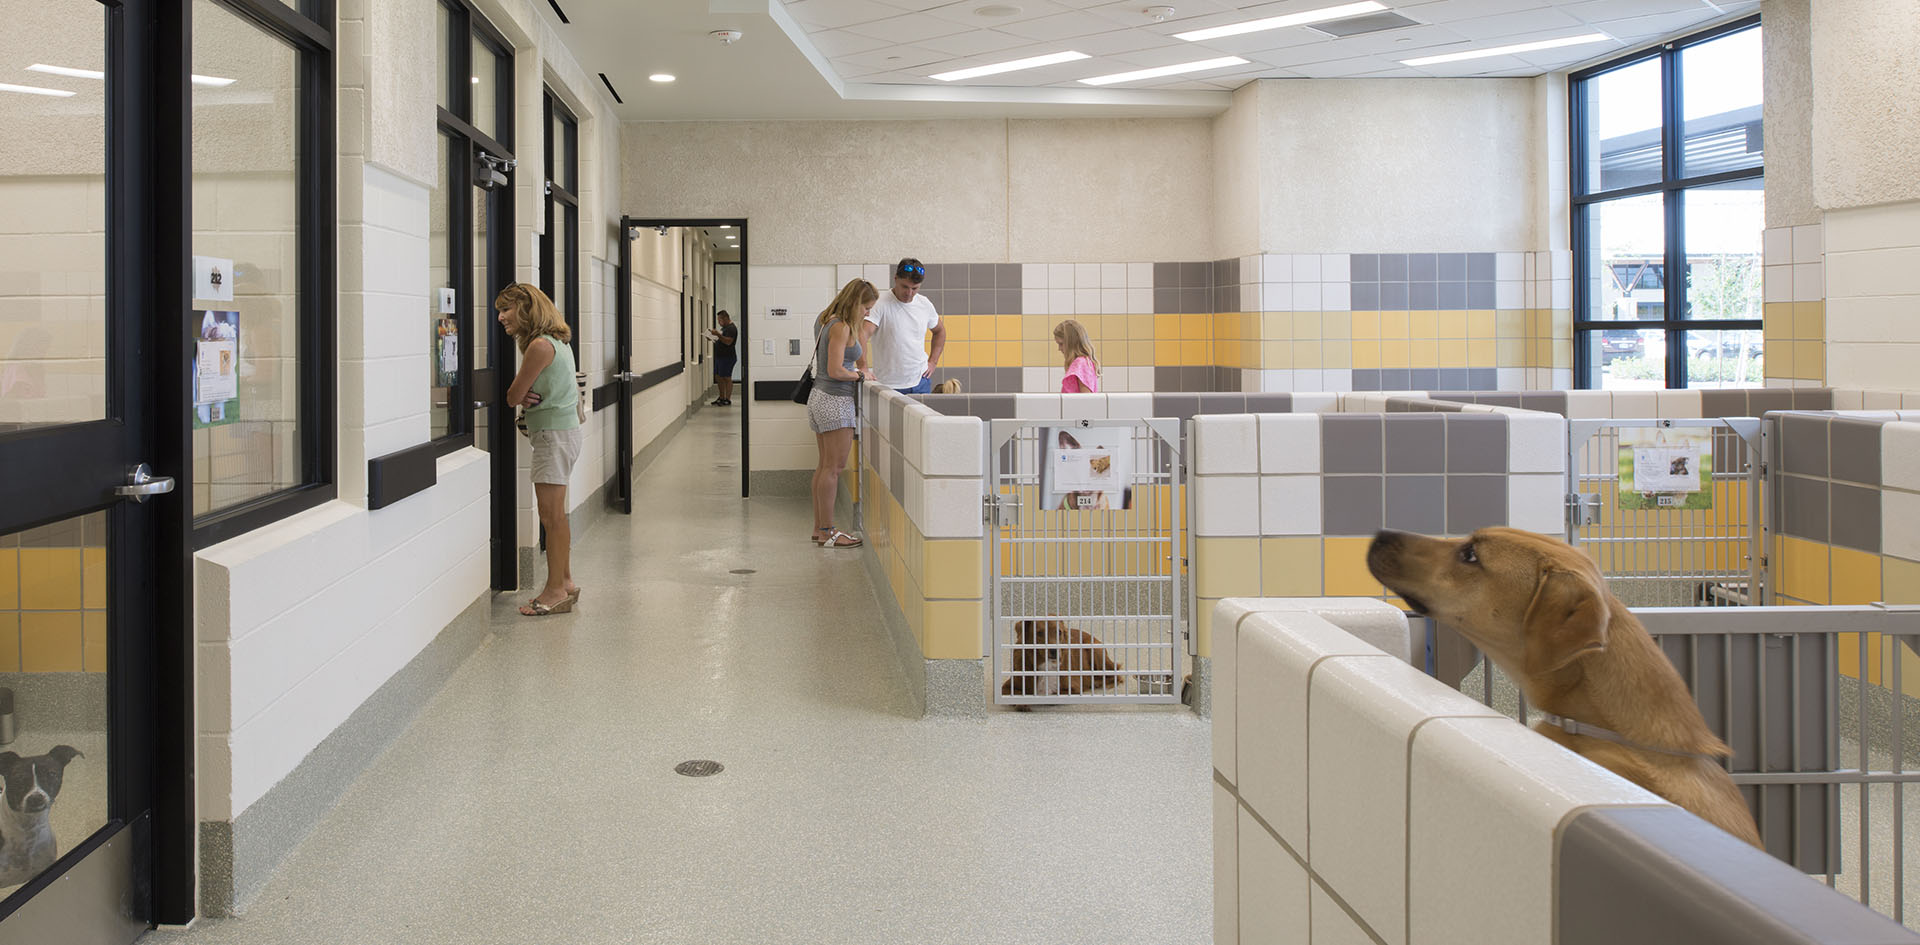 9 HSPCA state of the art animal shelter and wildlife center by Jackson & Ryan Architects